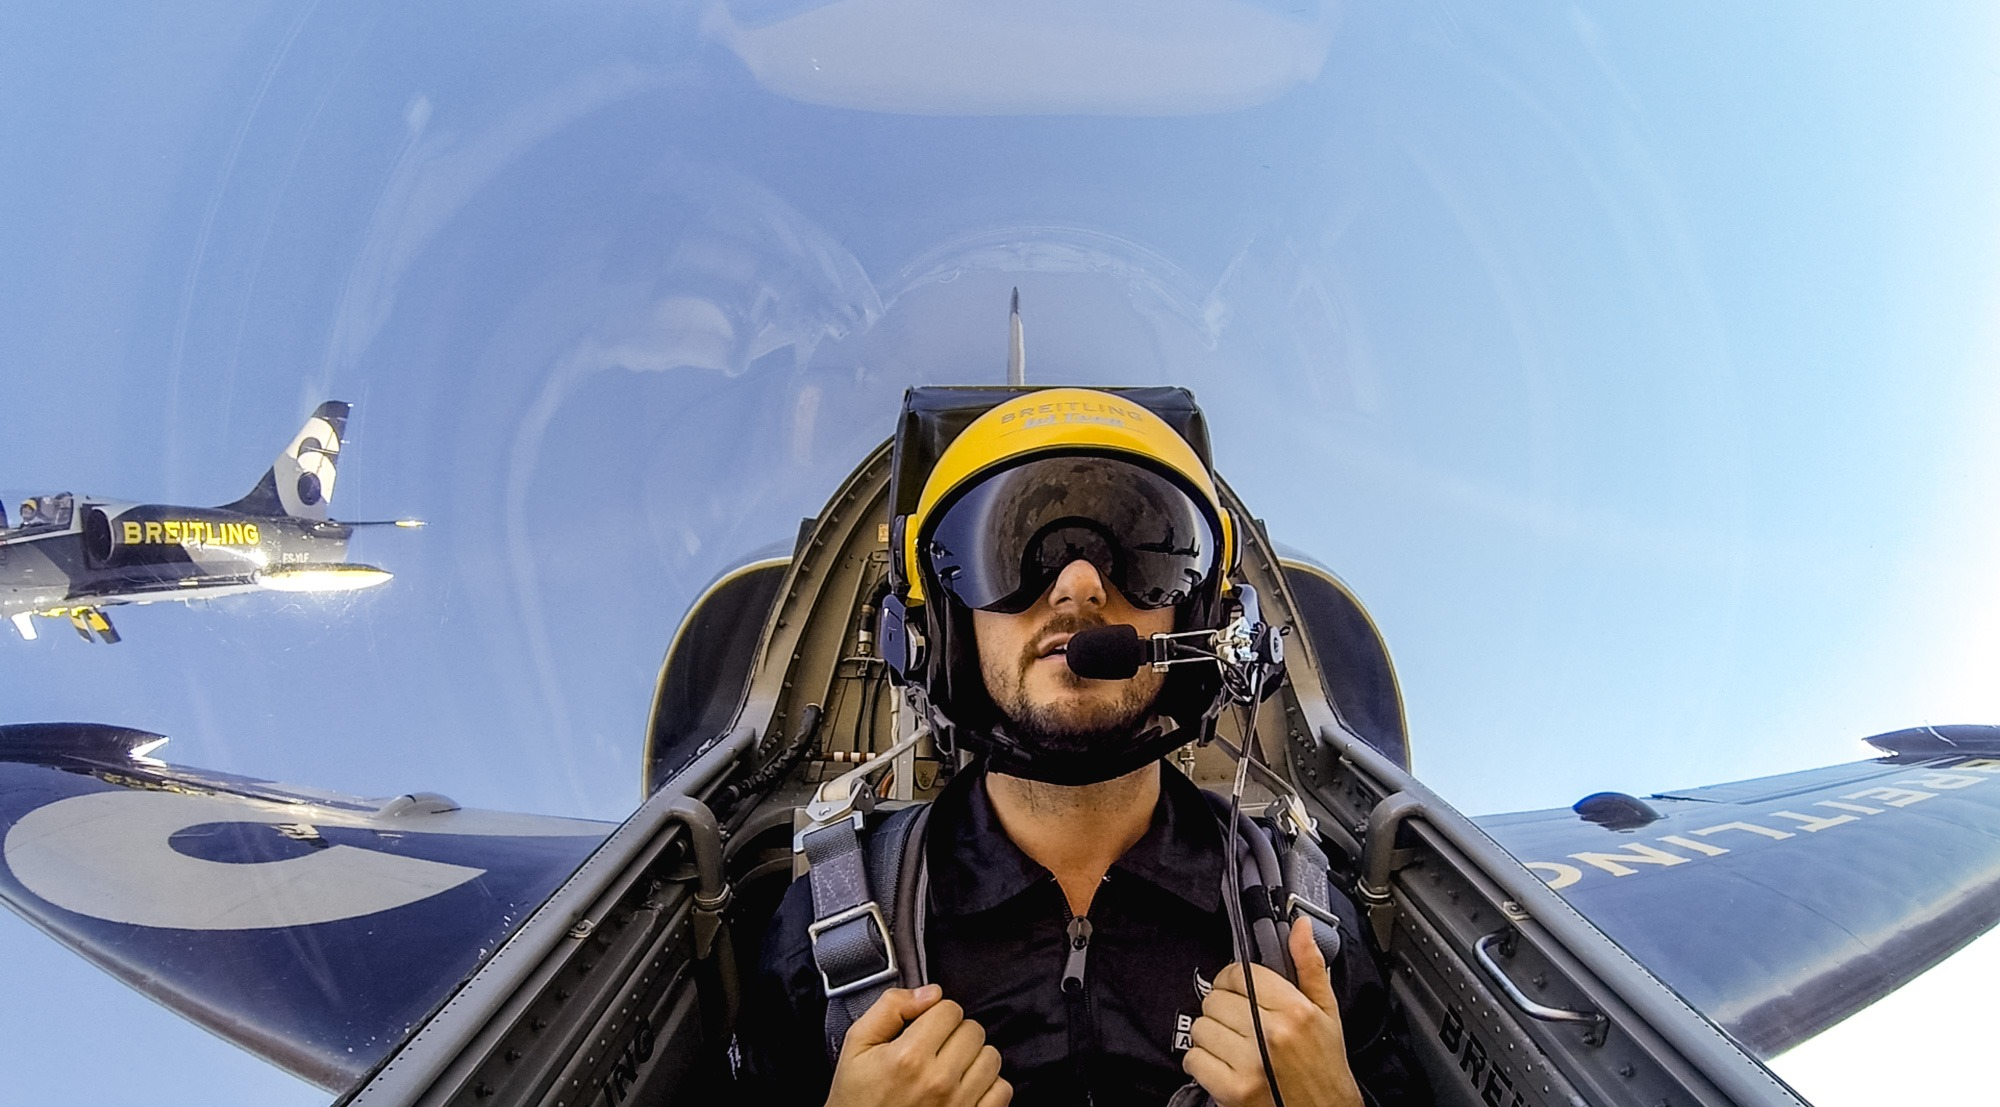 Breitling Jet Team - Vol